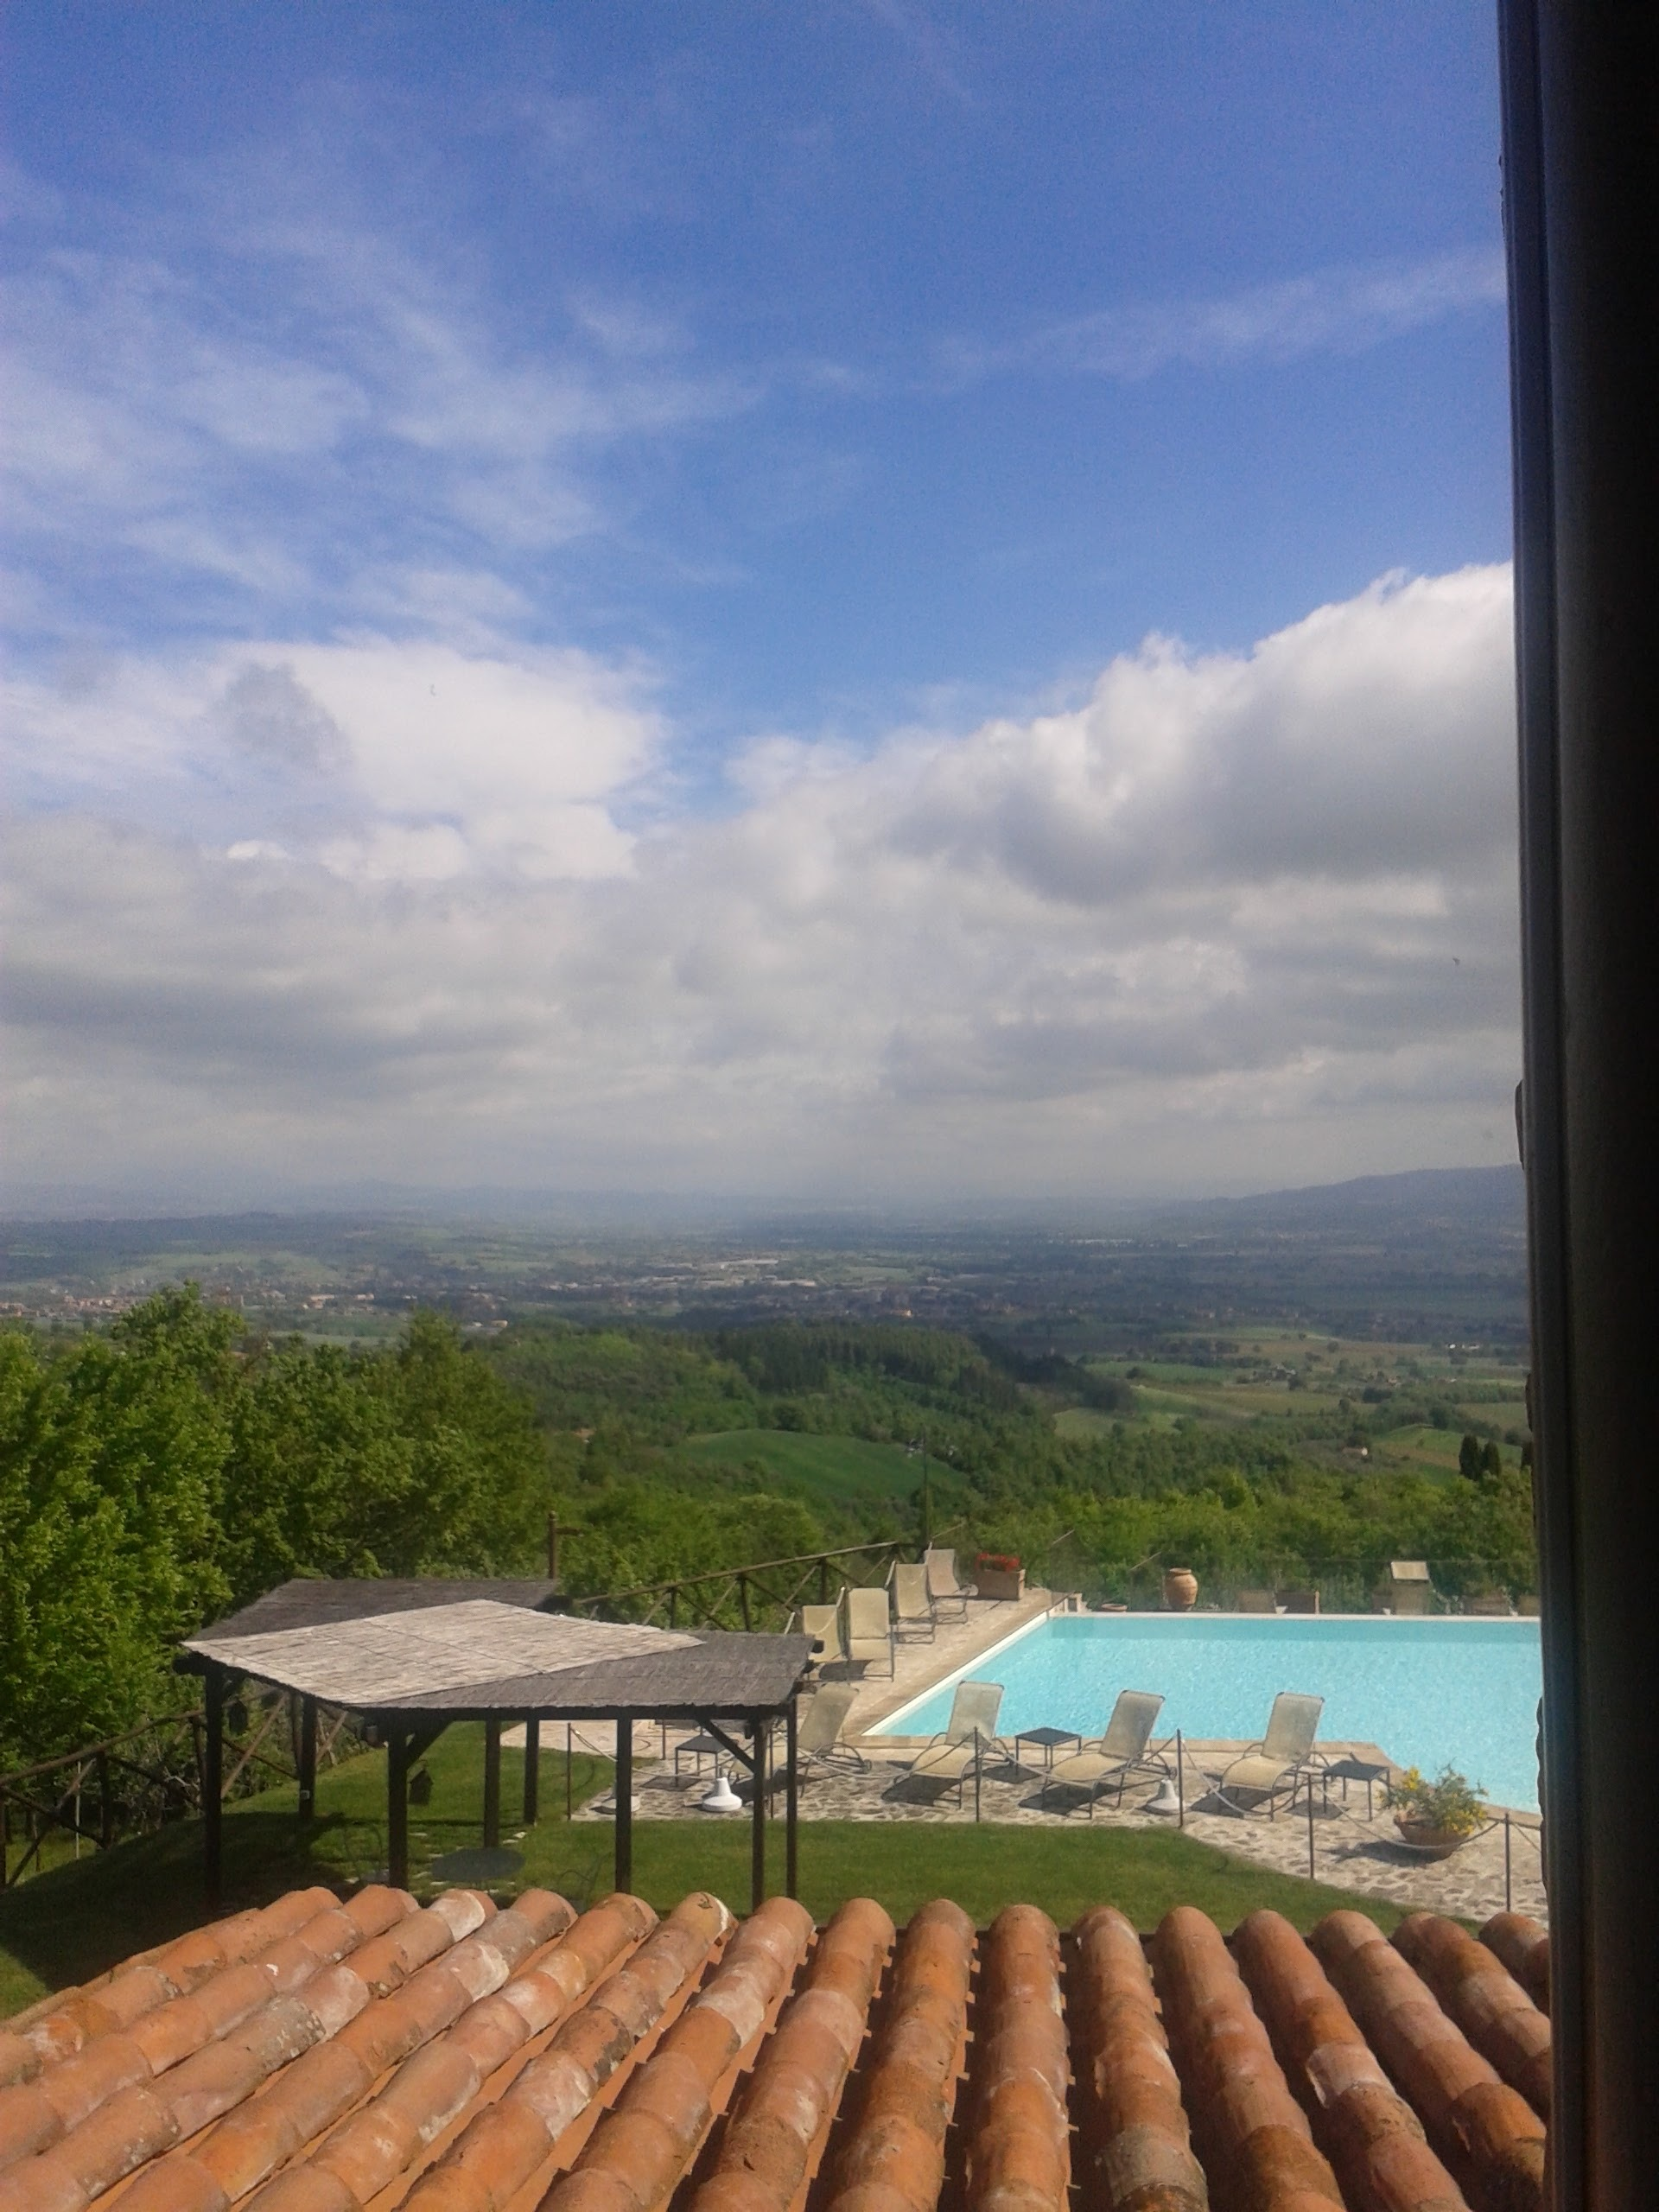 The view out of a window at our Umbrian Villa